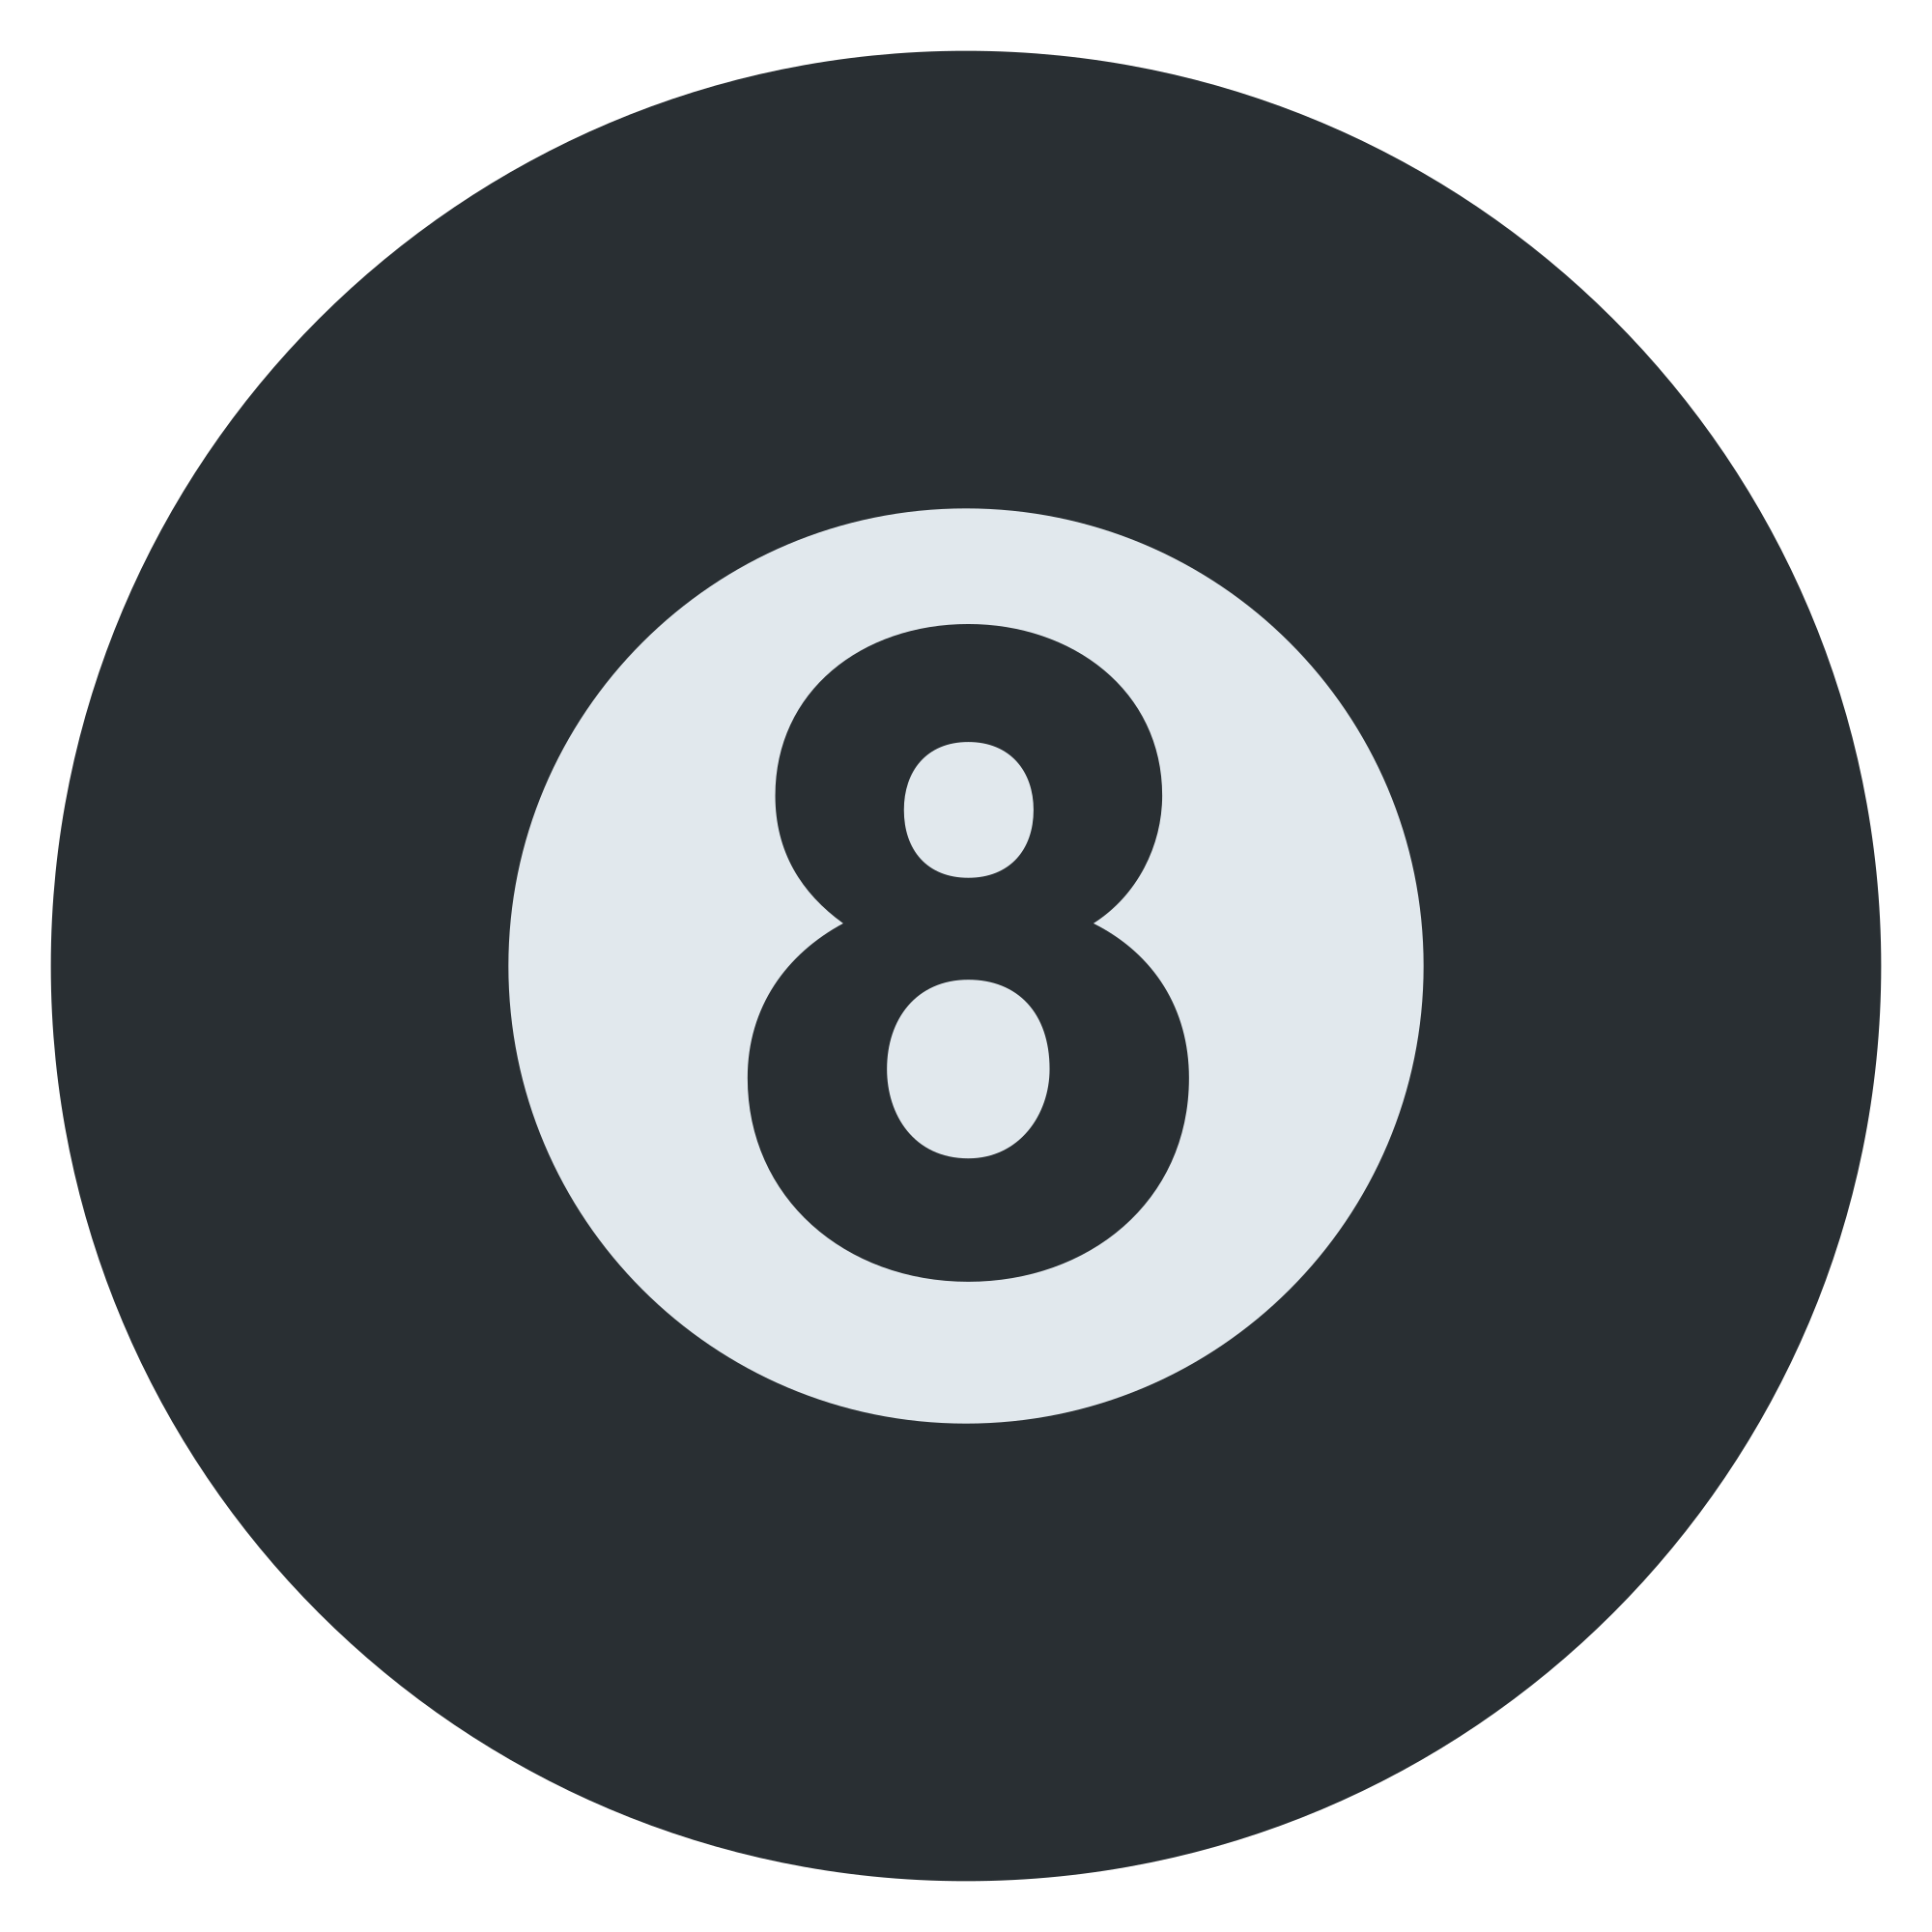 8 ball png